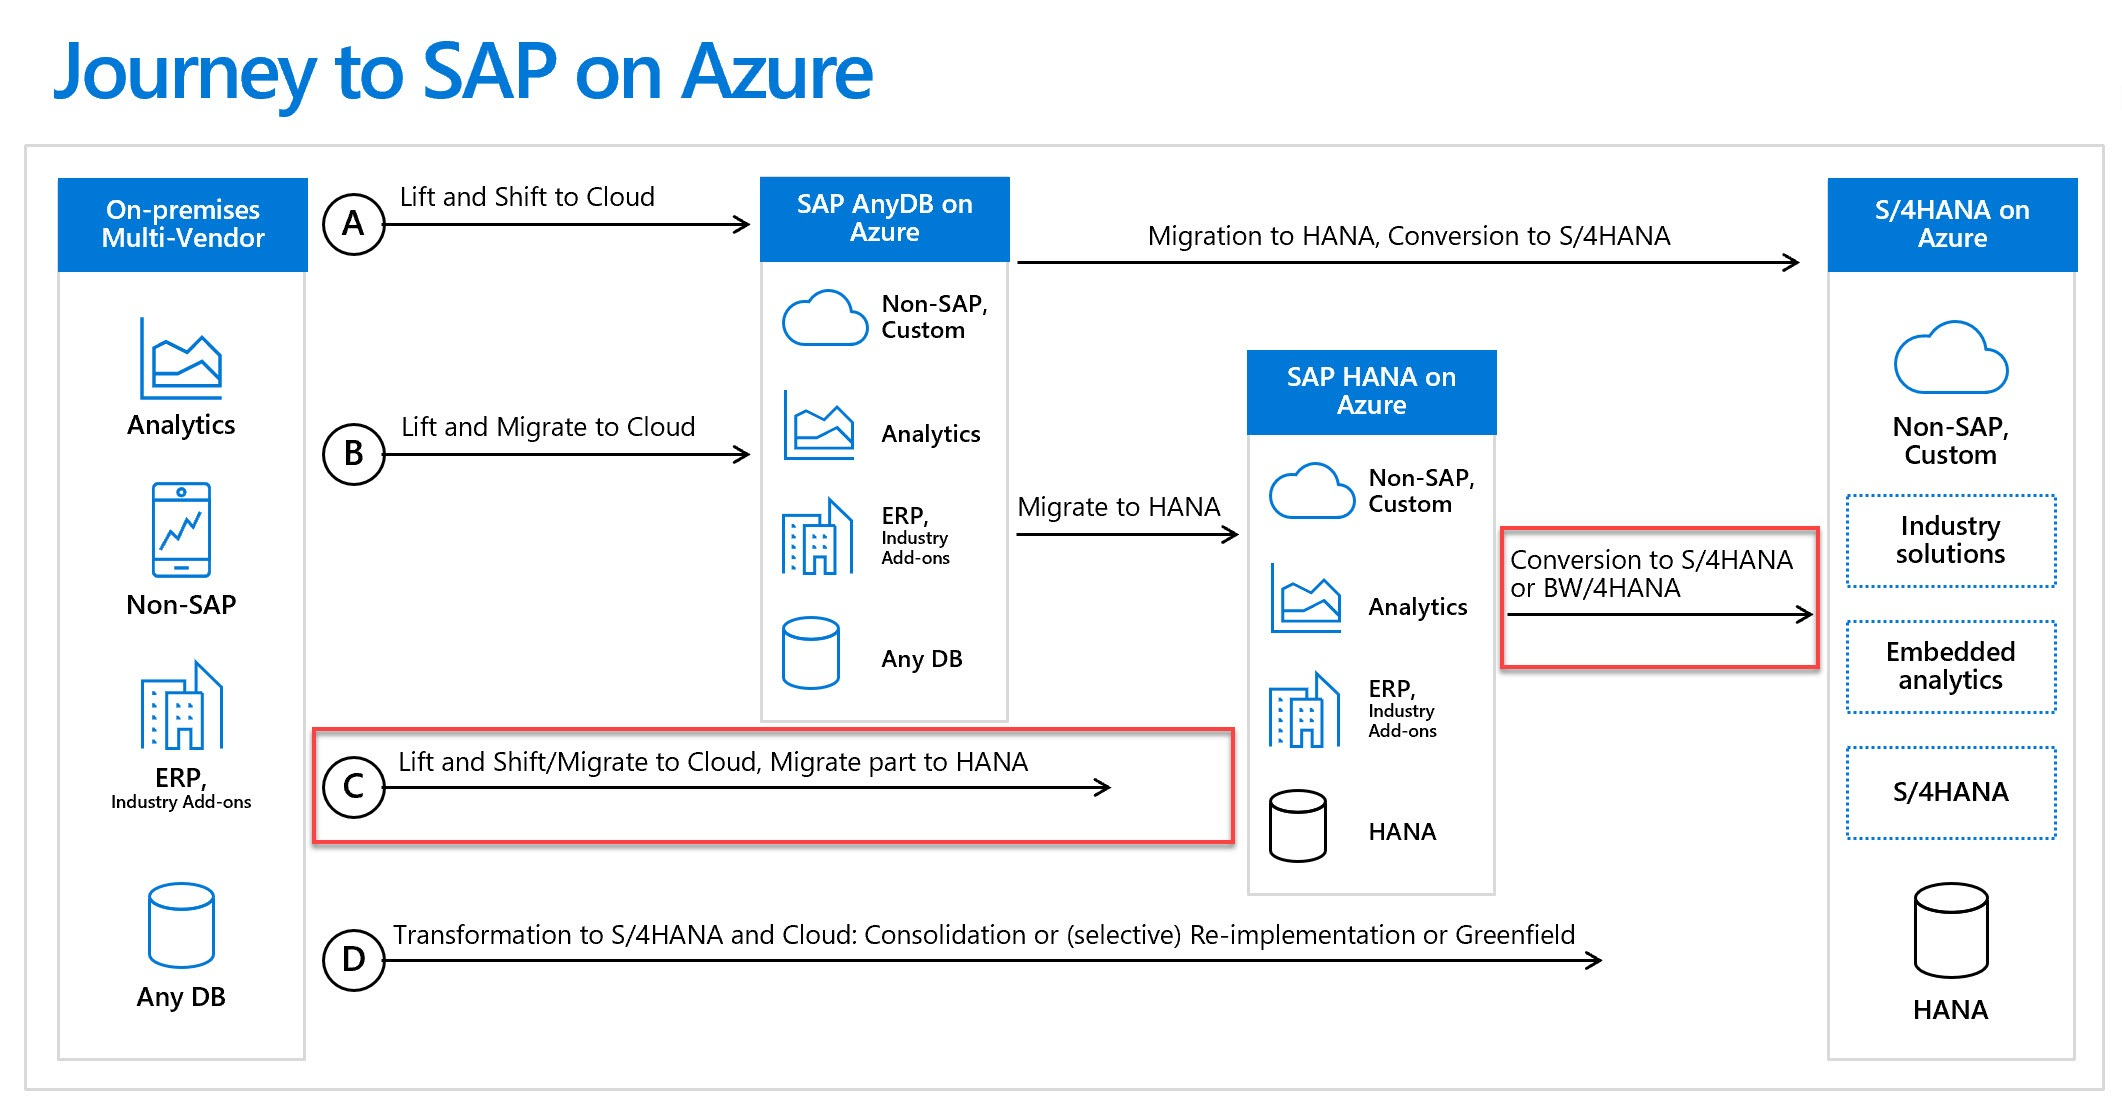 Diagram of the journey to SAP on Azure